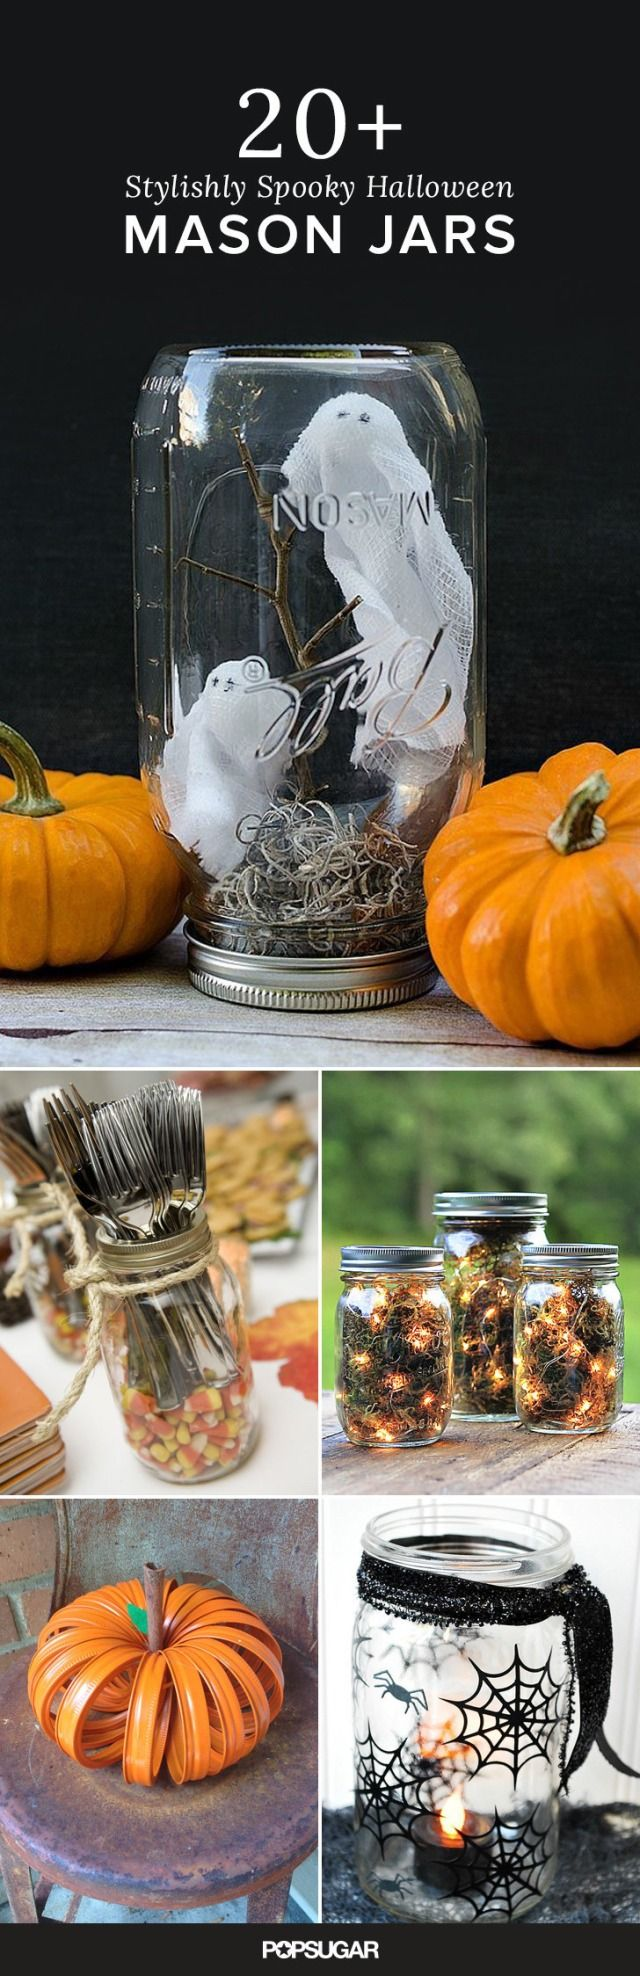 Halloween offers a great opportunity to use mason jars in brand new ways. They're the perfect base for a number of Halloween DIY projects, including tabletop pieces and spooky party decor.